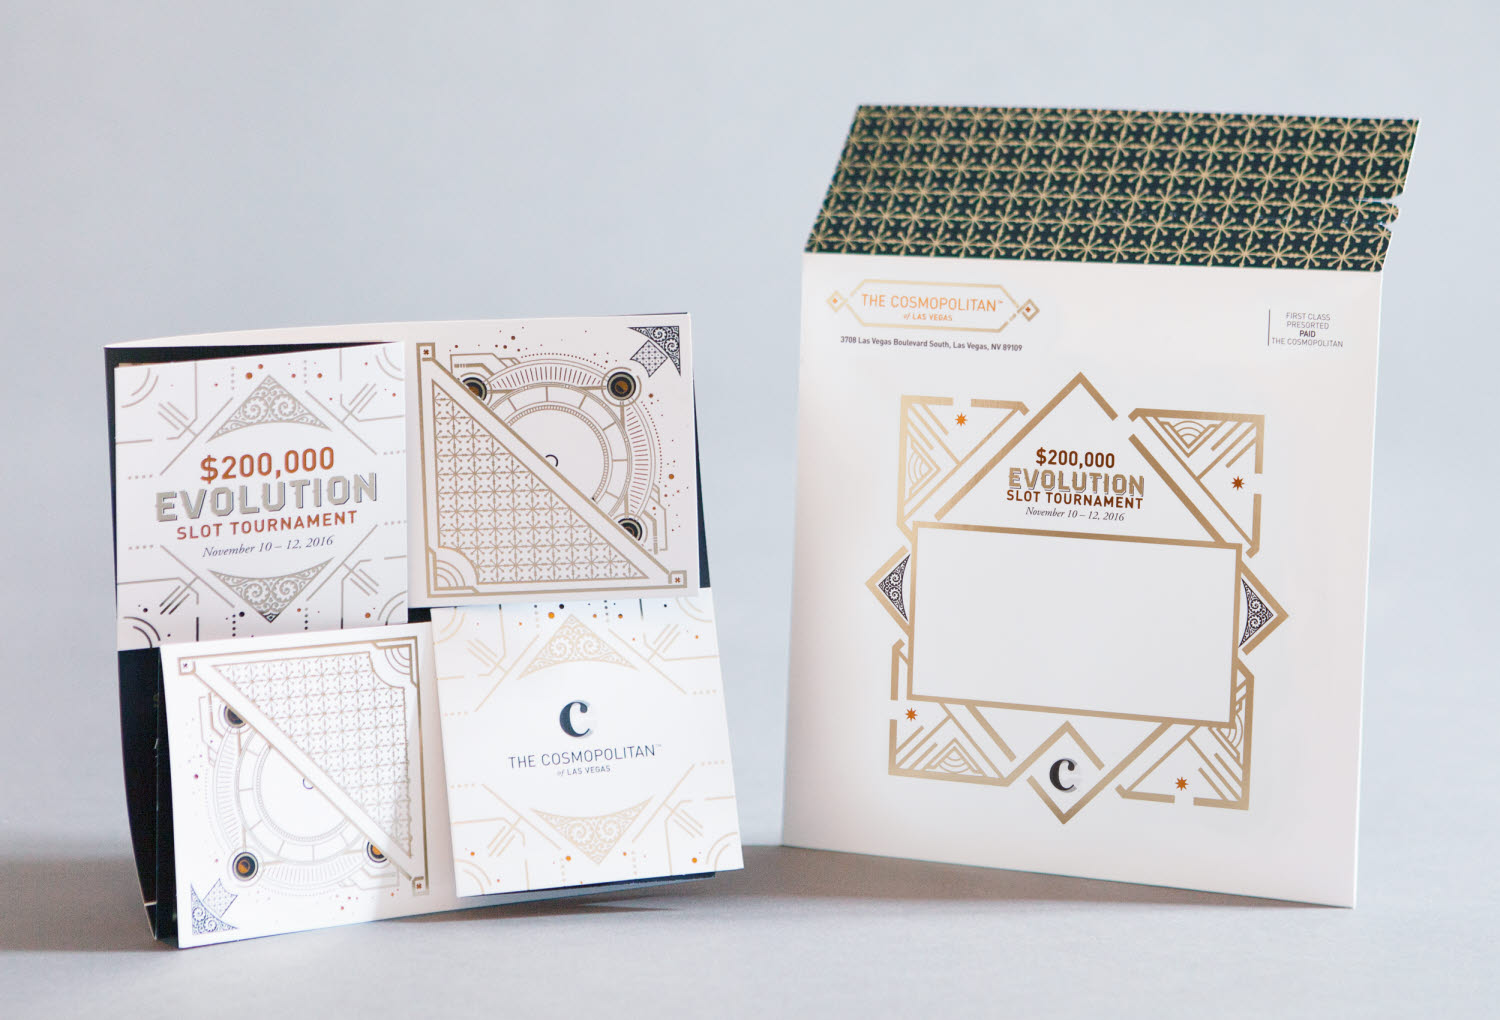 Luxury printed invitations for The Cosmopolitan hotel and casino